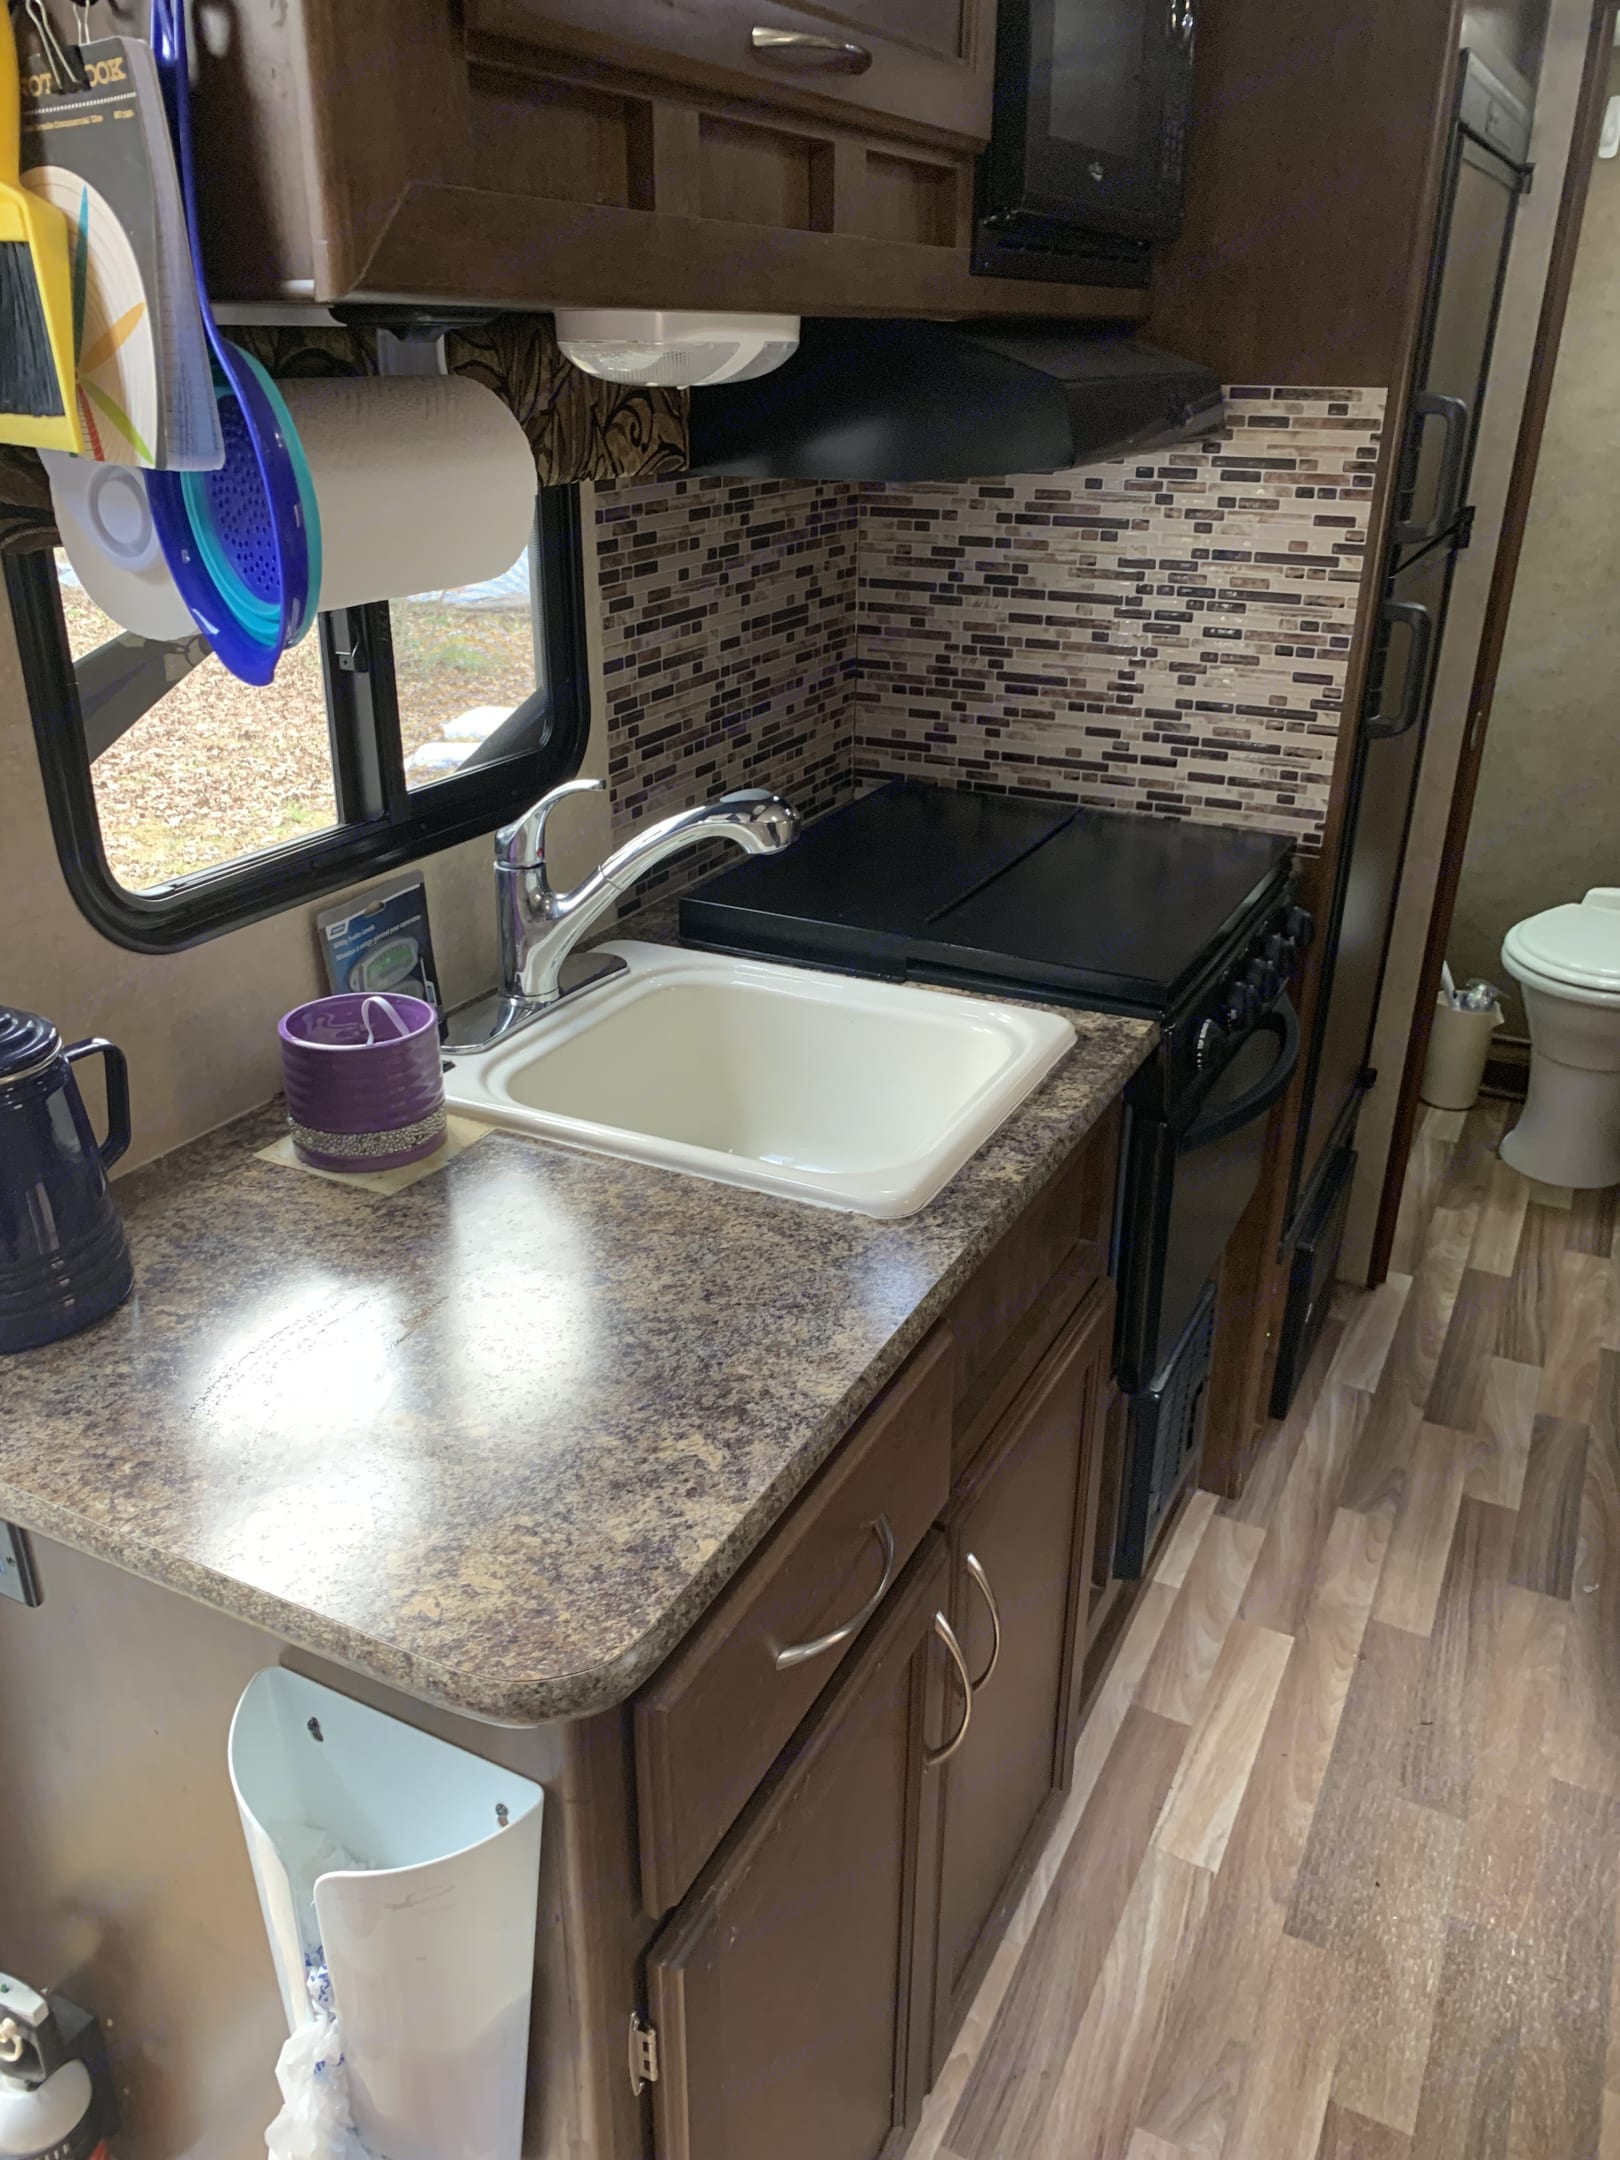 Cozy kitchen with all the fixins. (Dishes, silverware, pots, pans, trash bags and more!) . Pacific Coachworks Tango 2016